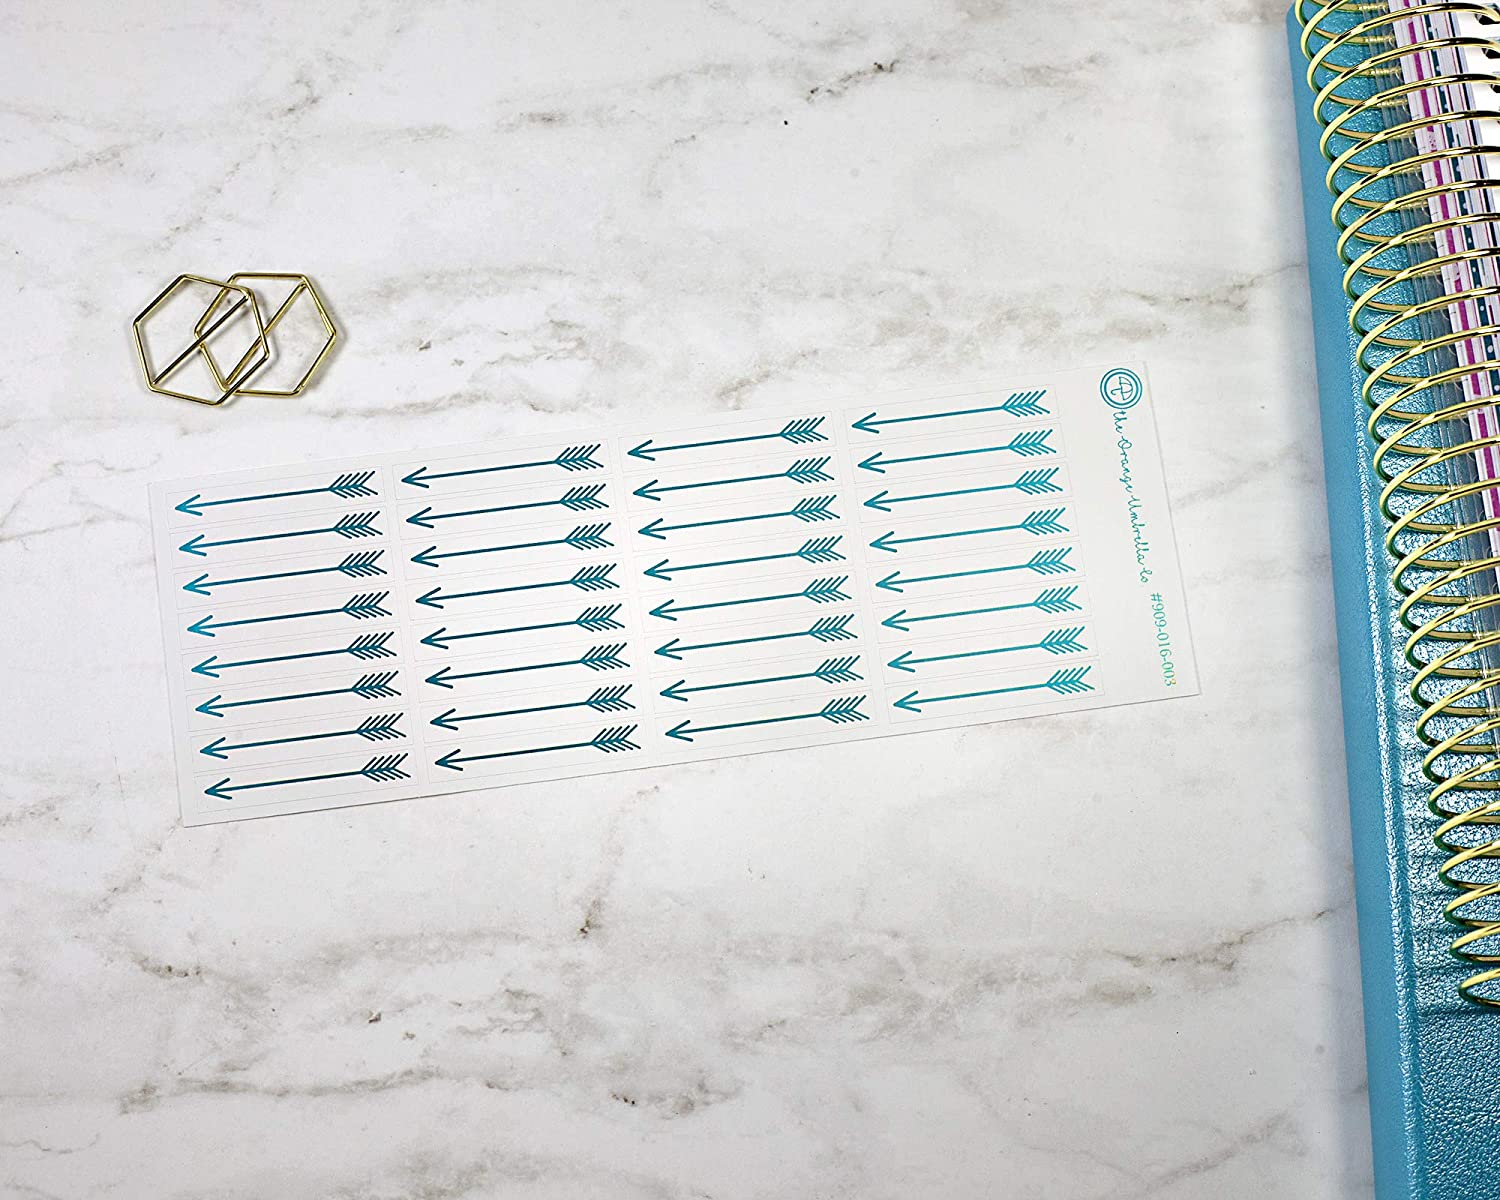 #909-016-003-F Arrow Foil Color Stickers Foiled Header Planner Stickers Divider Stickers for ECLP